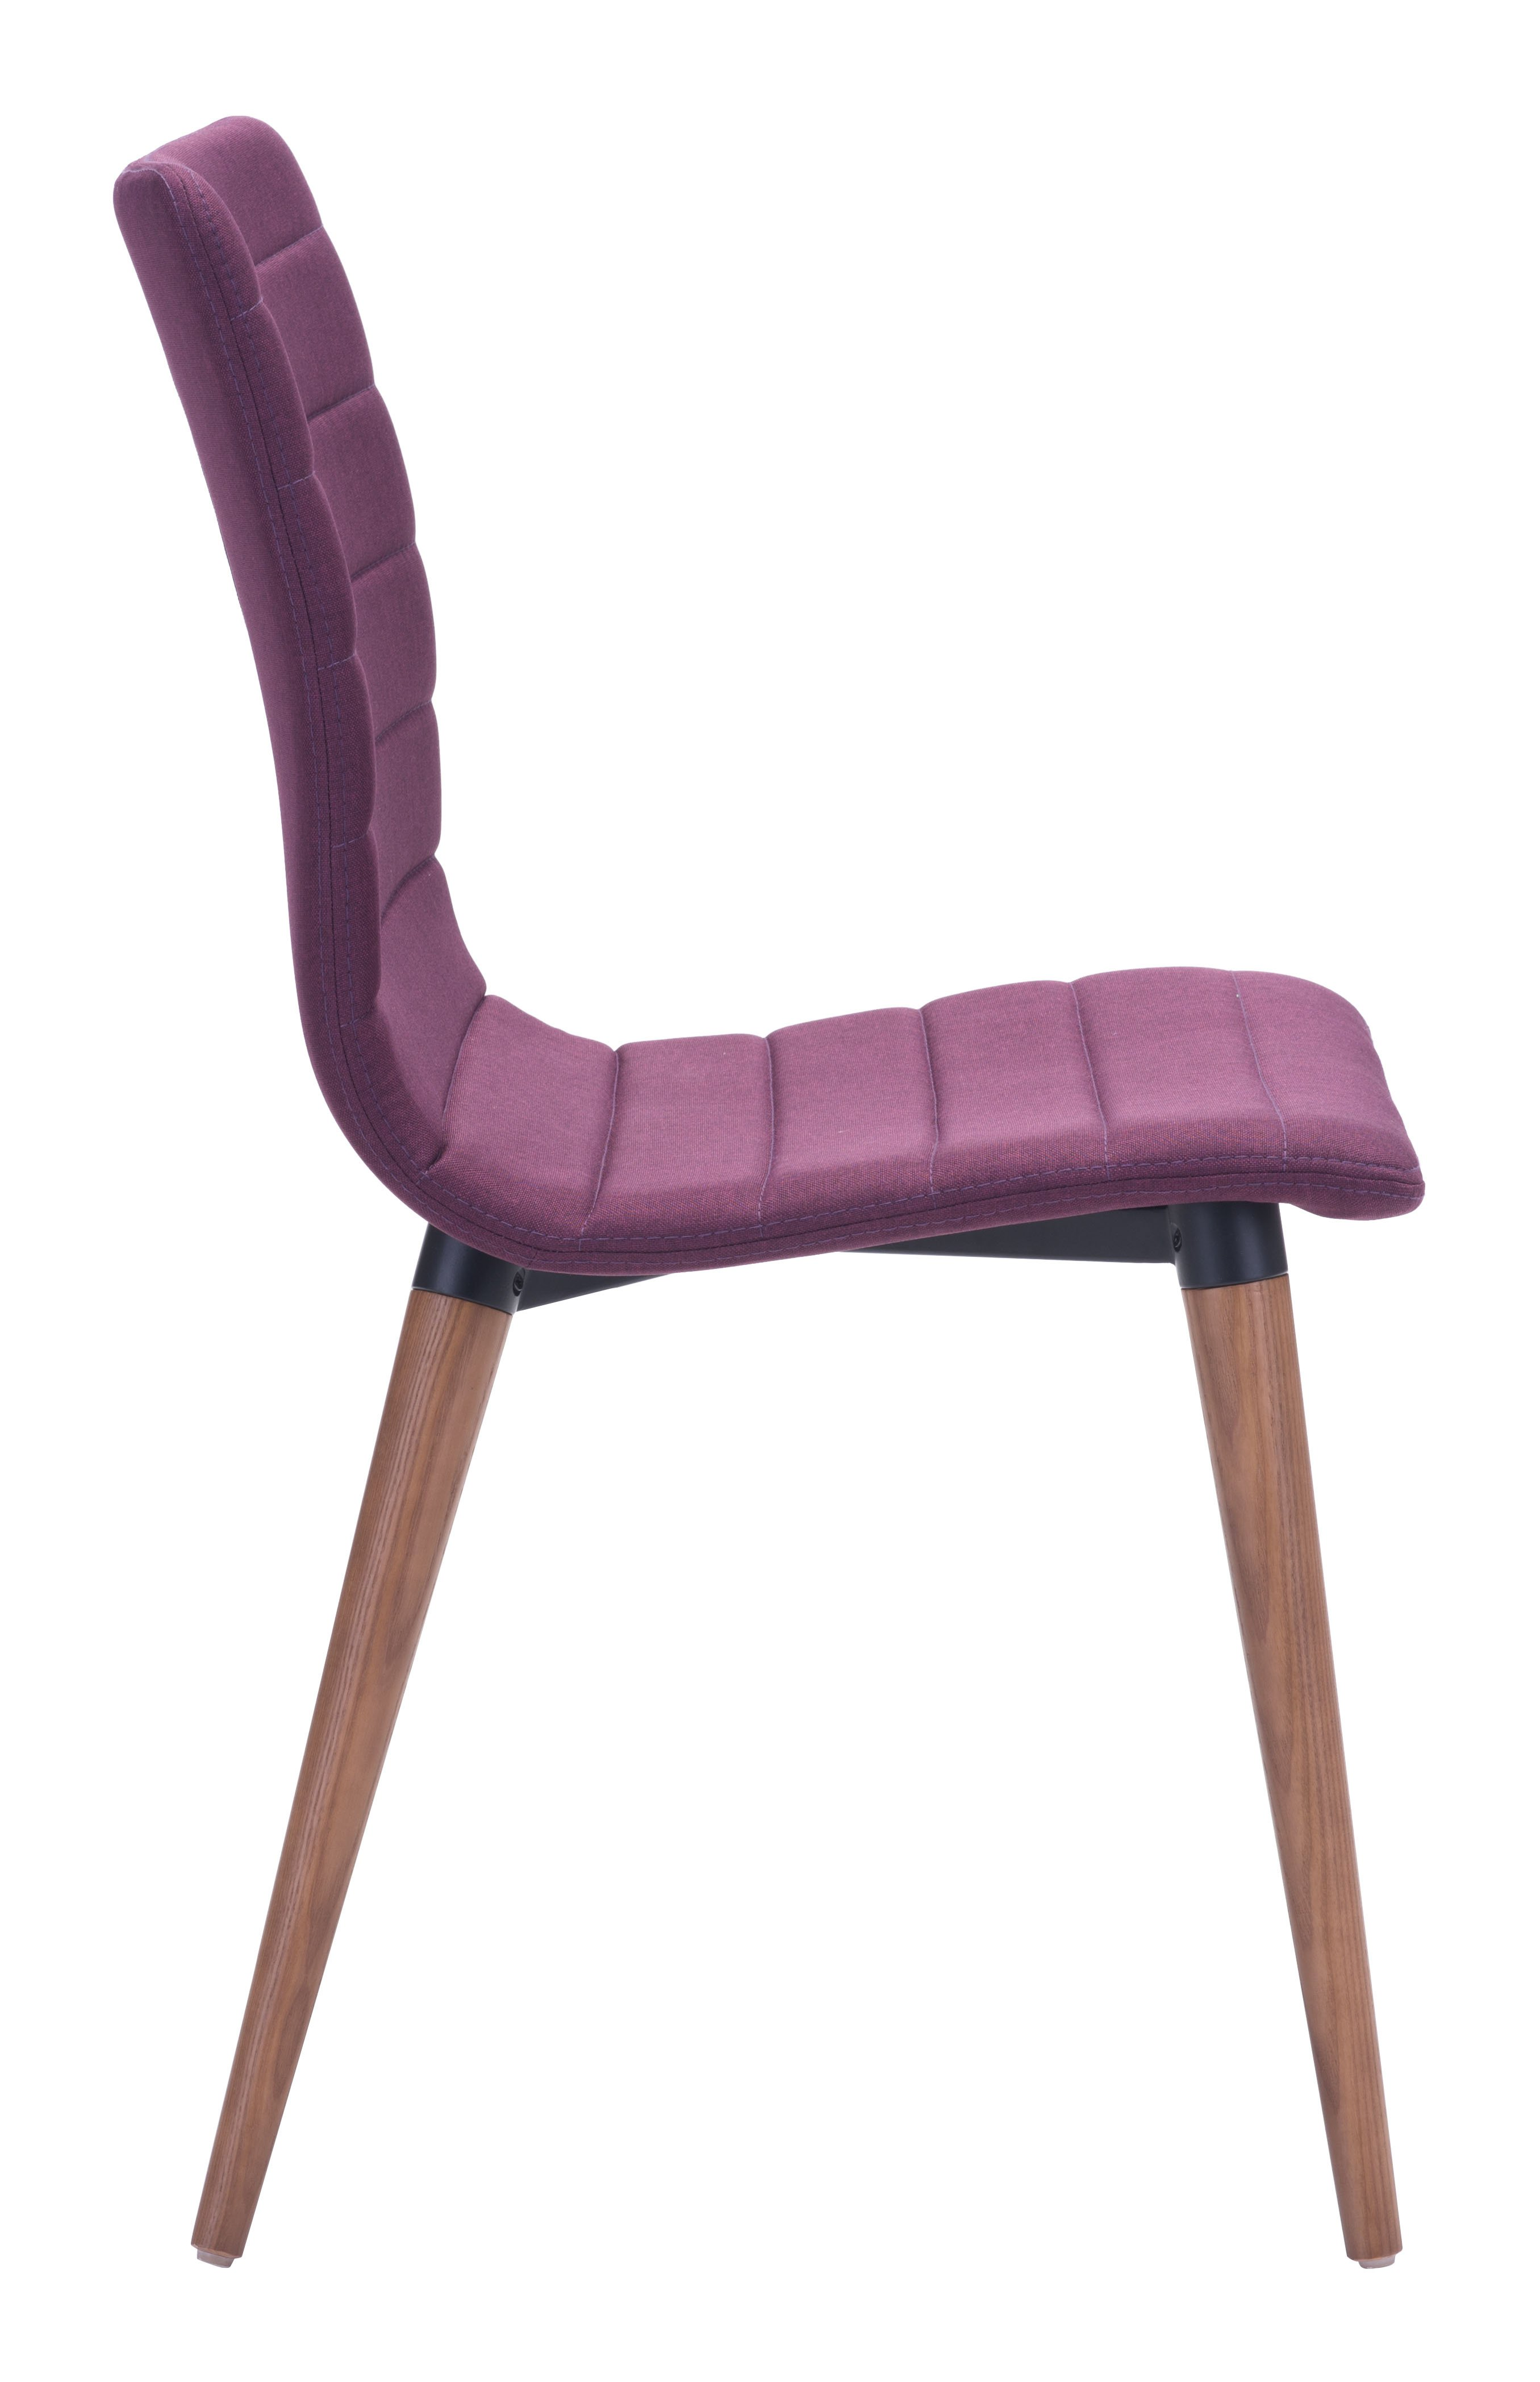 purple upholstered dining chairs minnie mouse desk chair room mid century modern set of 2